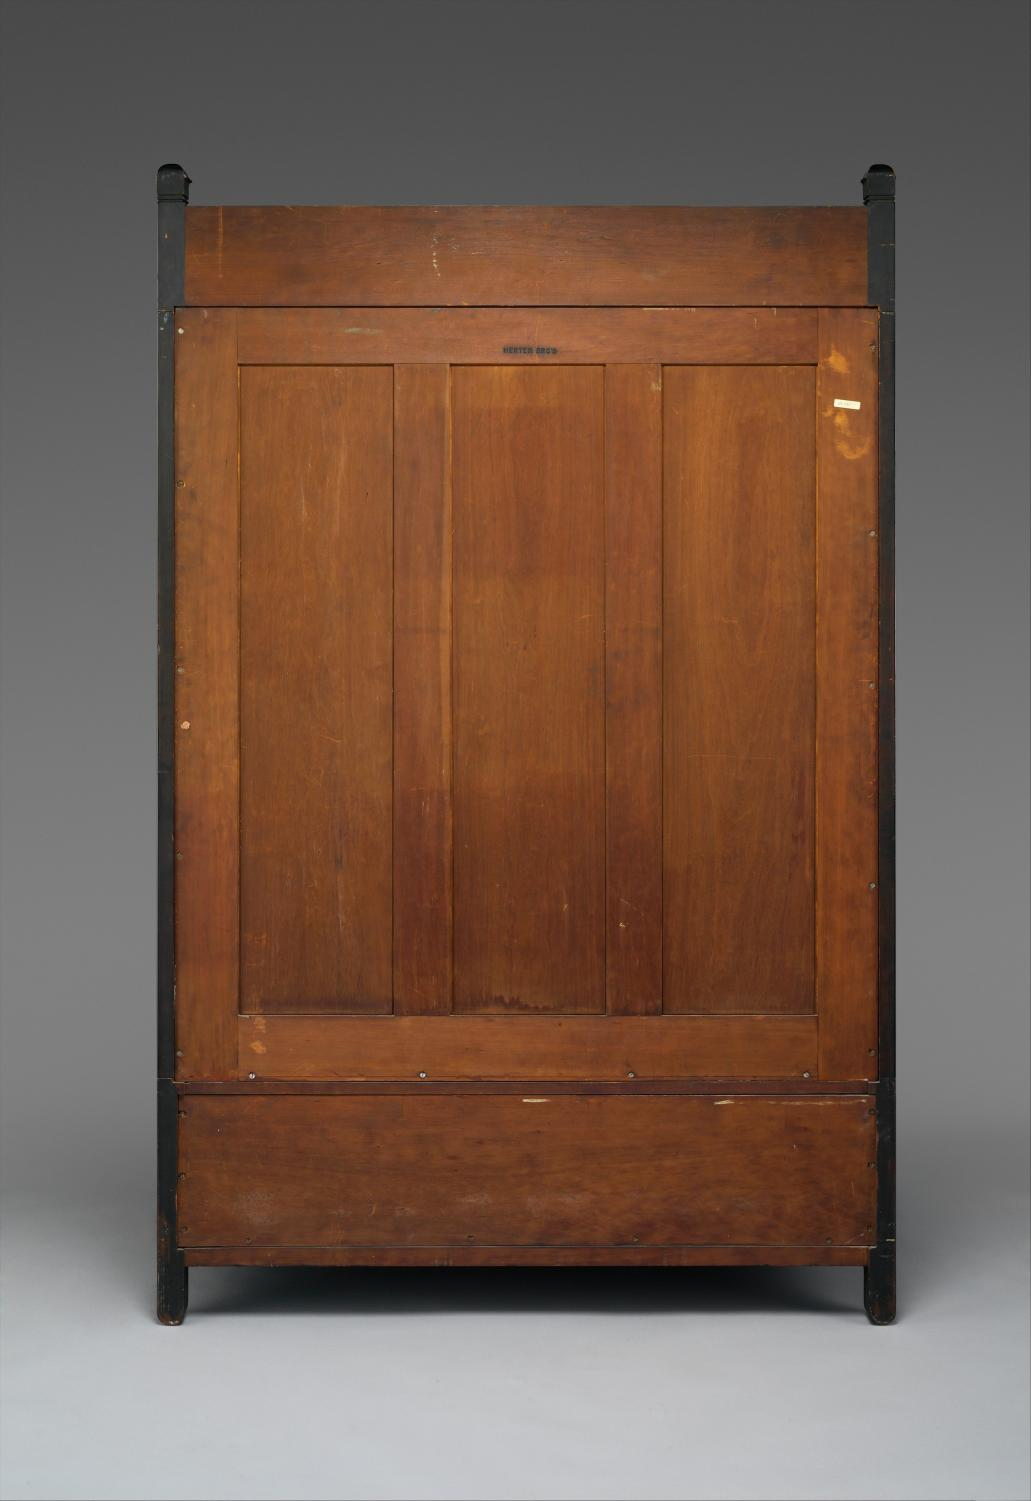 an image of a wardrobe.